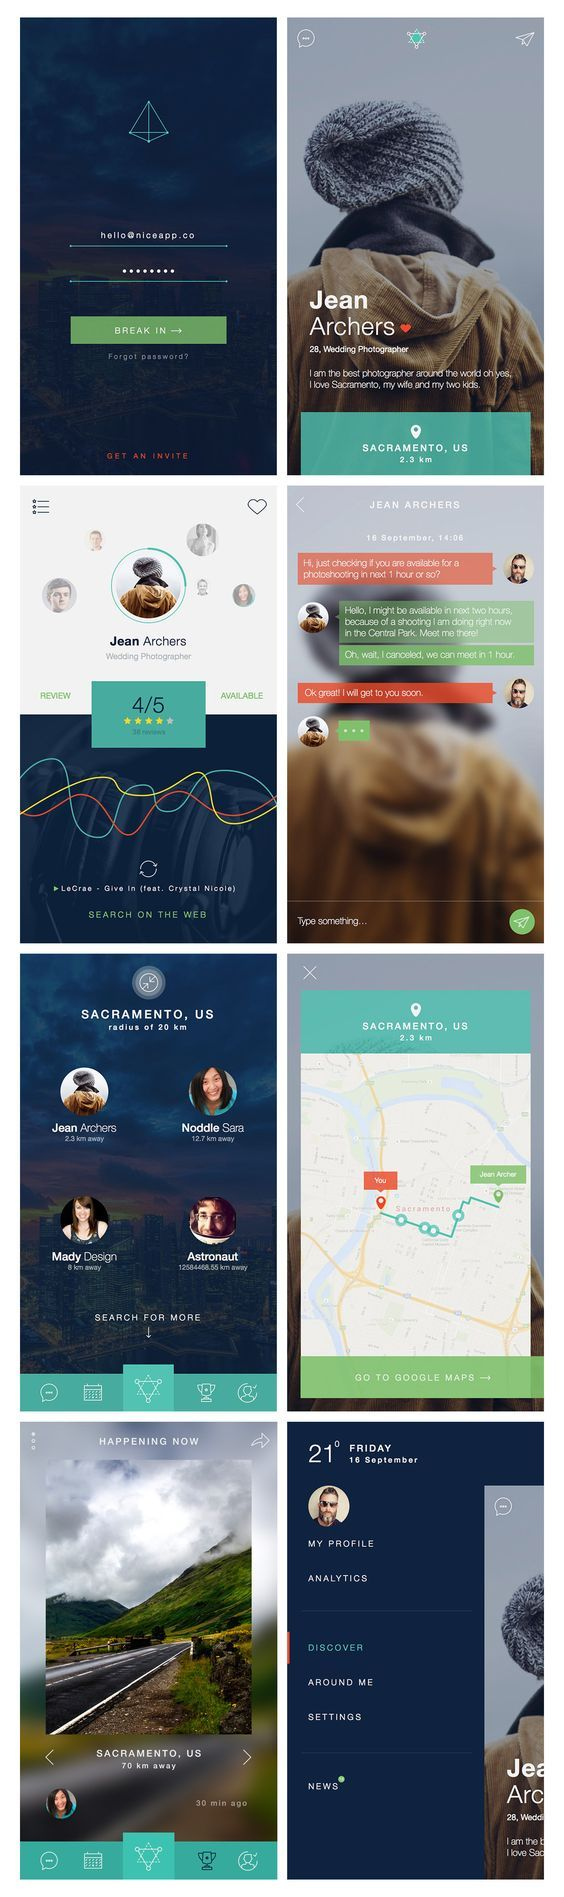 Nerdial App UI – 8 screens FREE PSD on Behance: